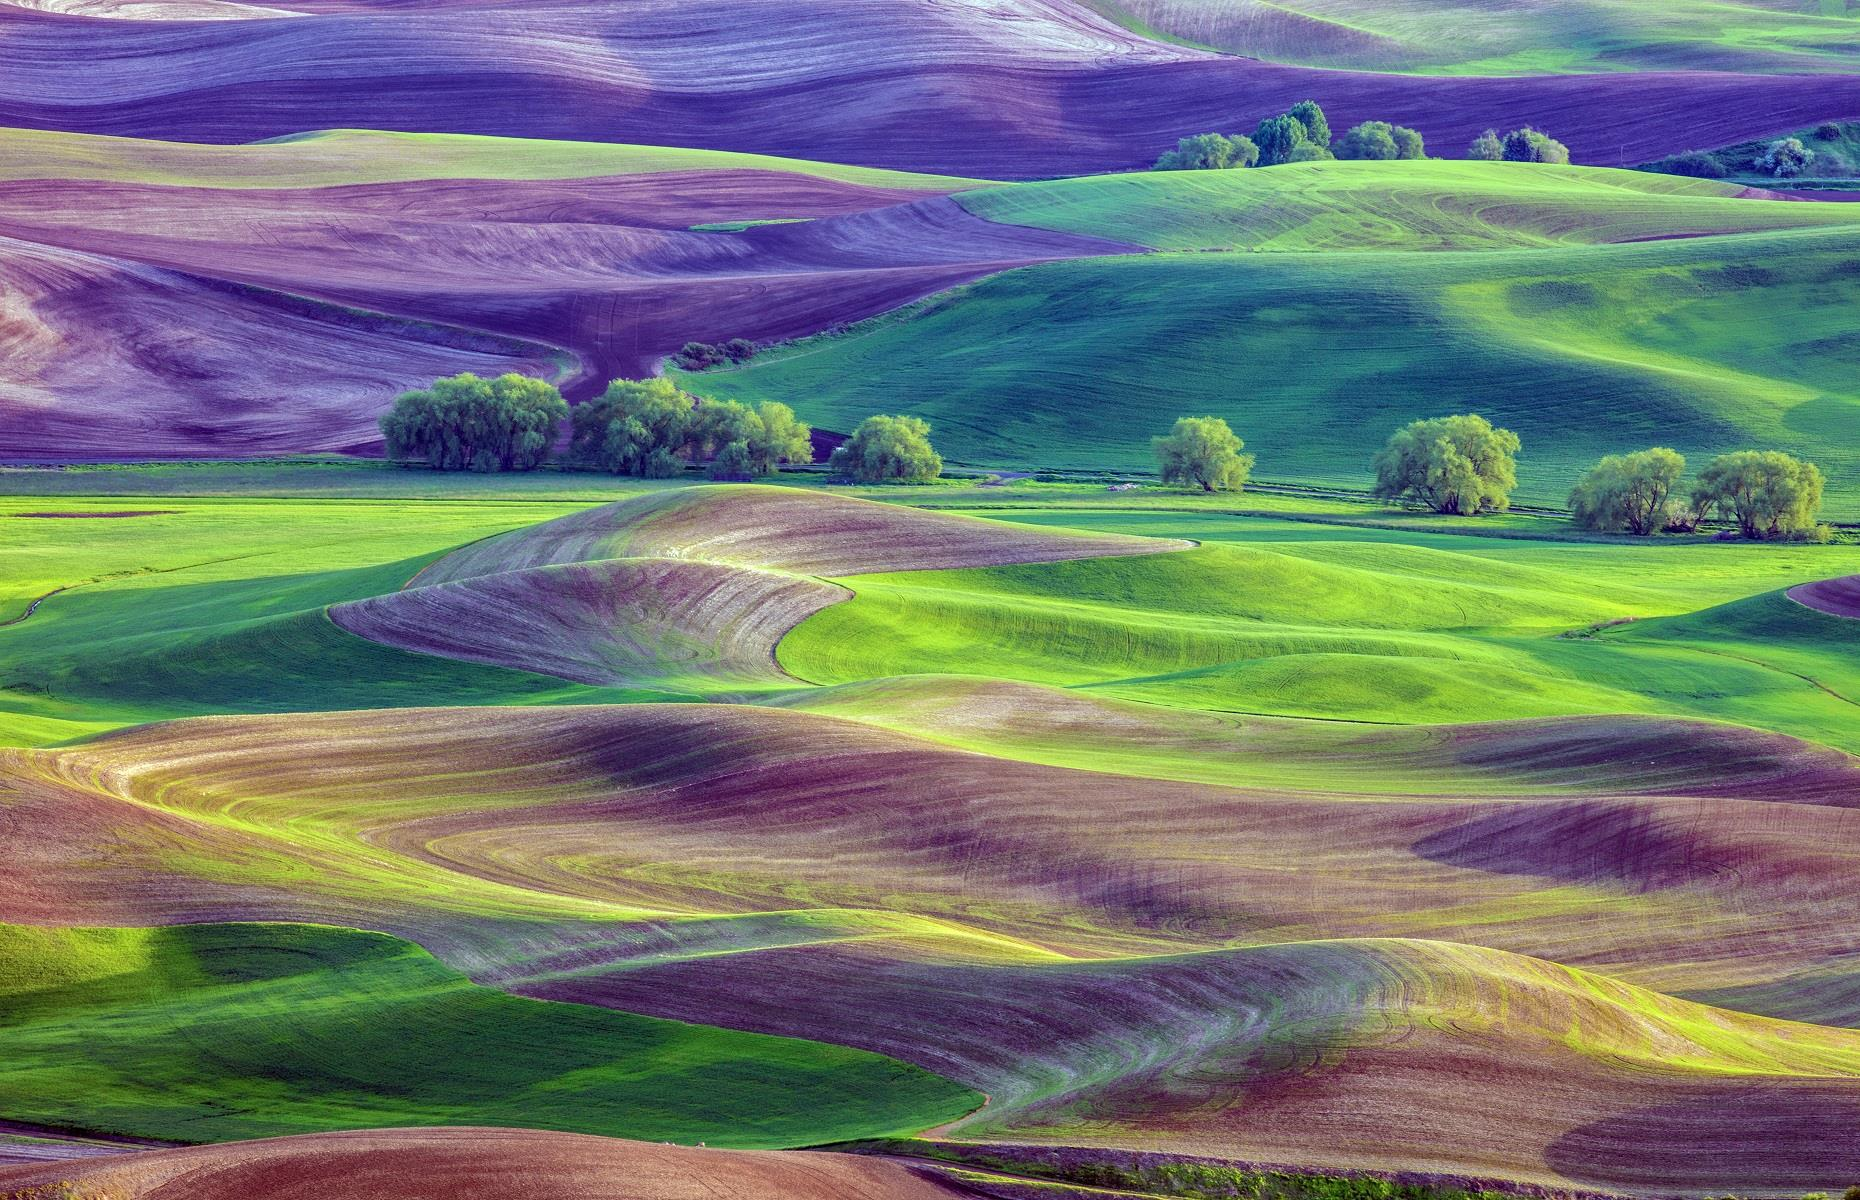 Slide 40 of 59: Despite being one of America's most attractive regions, the Palouse often slips under the radar. This major agricultural area, which also encompasses parts of Idaho, is known for picture-perfect pastoral fields that shimmer in shades of purple and green. These idyllic hills were formed over tens of thousands of years, from wind-blown dust and silt from dryer climes.